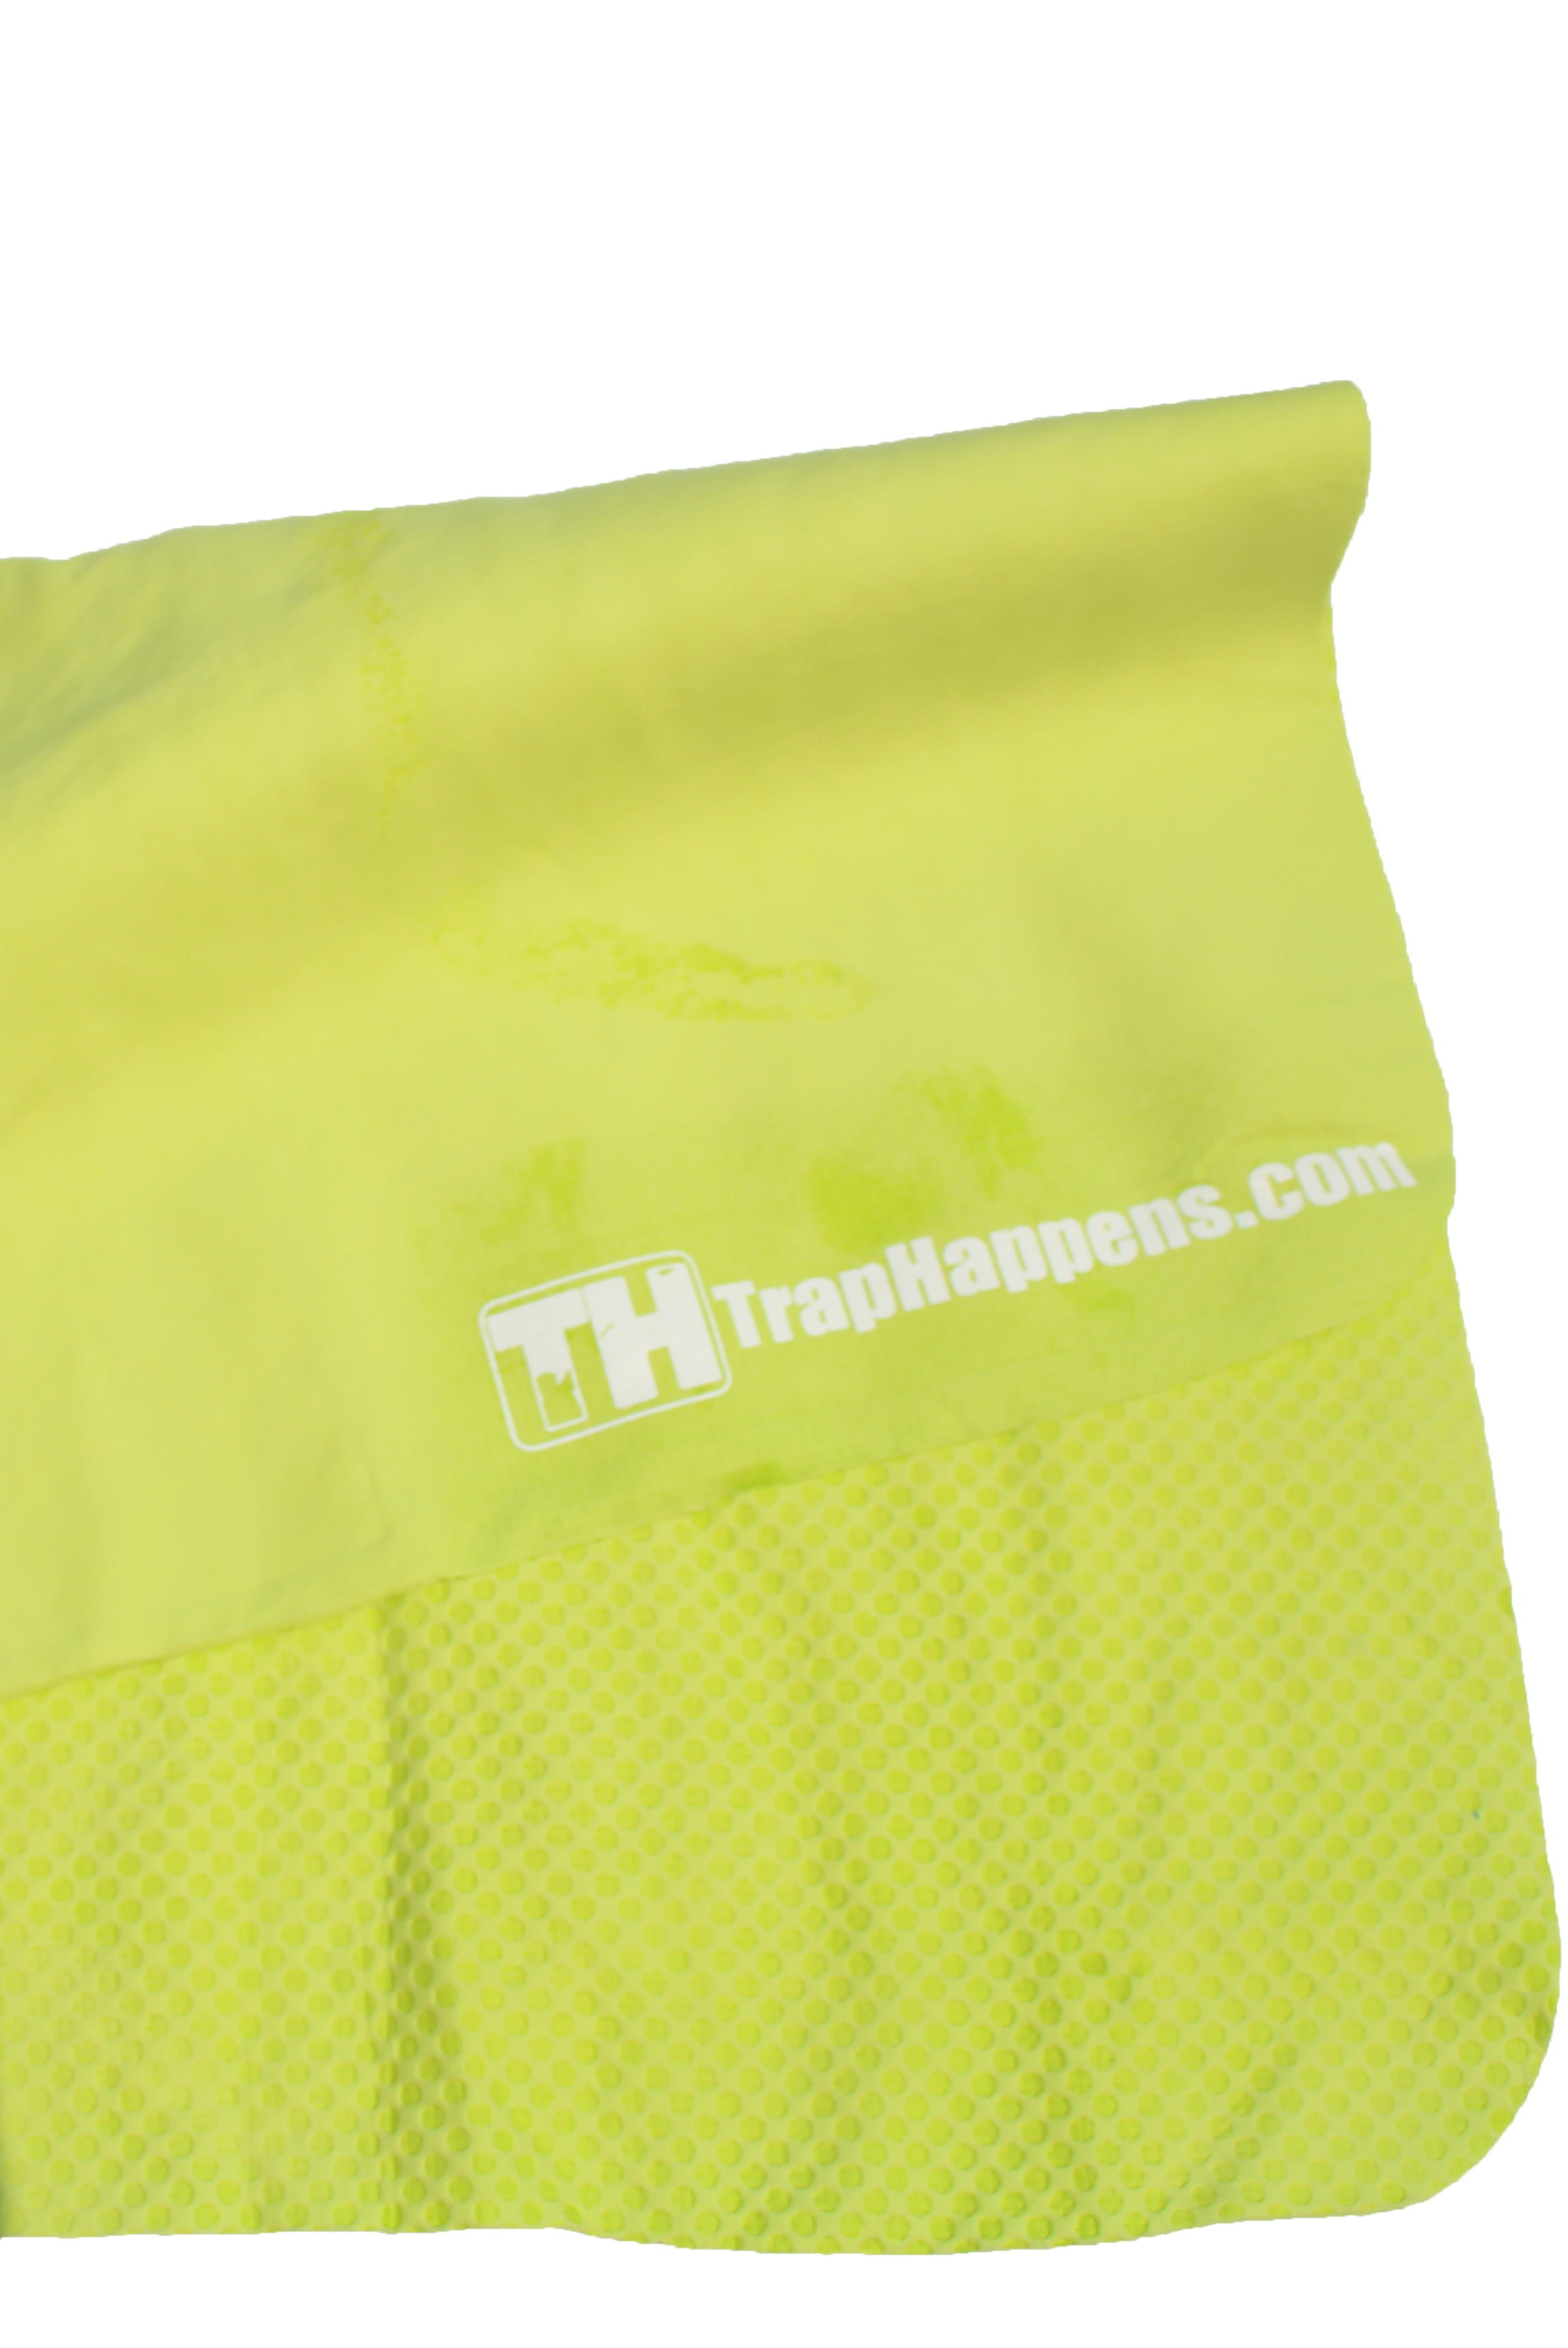 Trap Happens Cooling Towel Neon Green